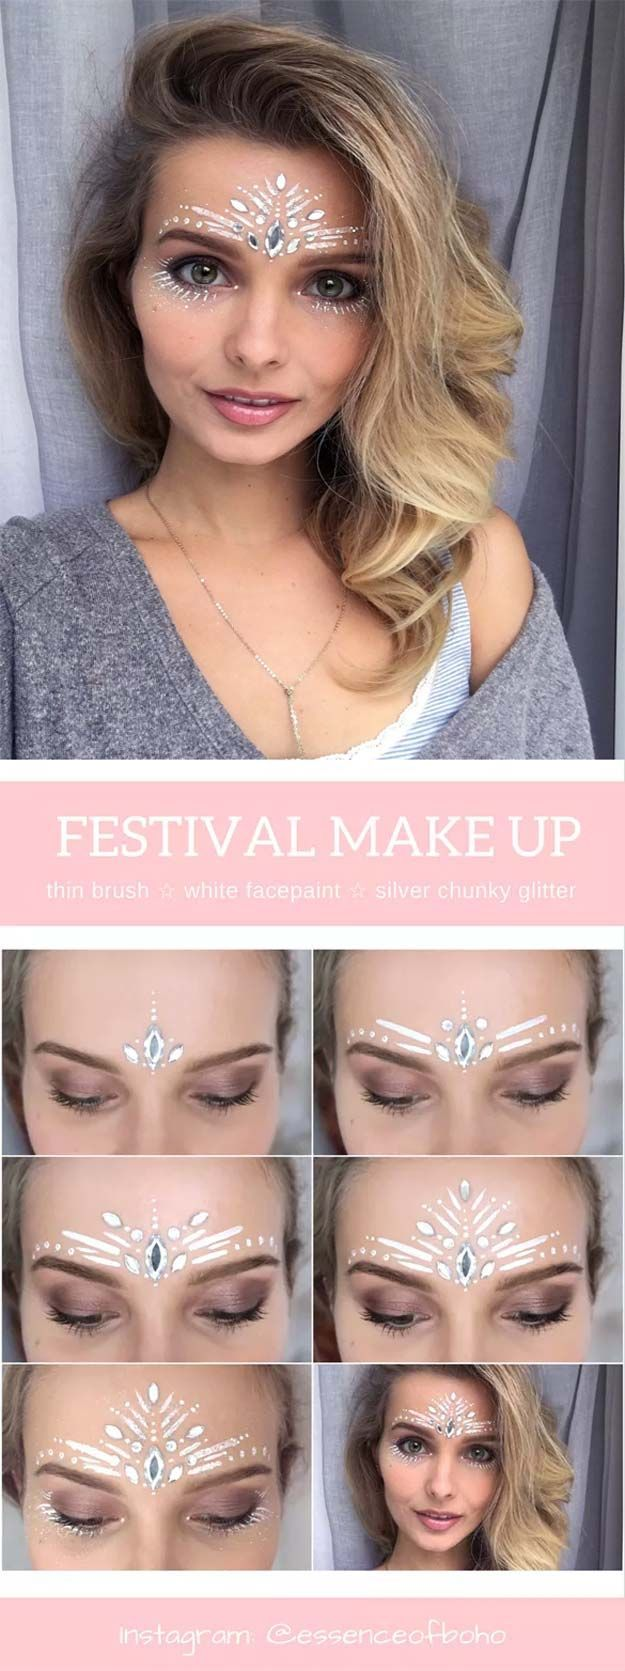 Festival Makeup Tutorials - Festival Makeup Tutorial: White Fairy - Awesome Glitter and Rhinestone Make Up Ideas for the Next Rave or Summer Music Festival - Awesome Tribal and Bohemian Looks For Summer Plus a Great Gold Boho Tutorial for the Next EDM Show - thegoddess.com/festival-makeup-tutorials